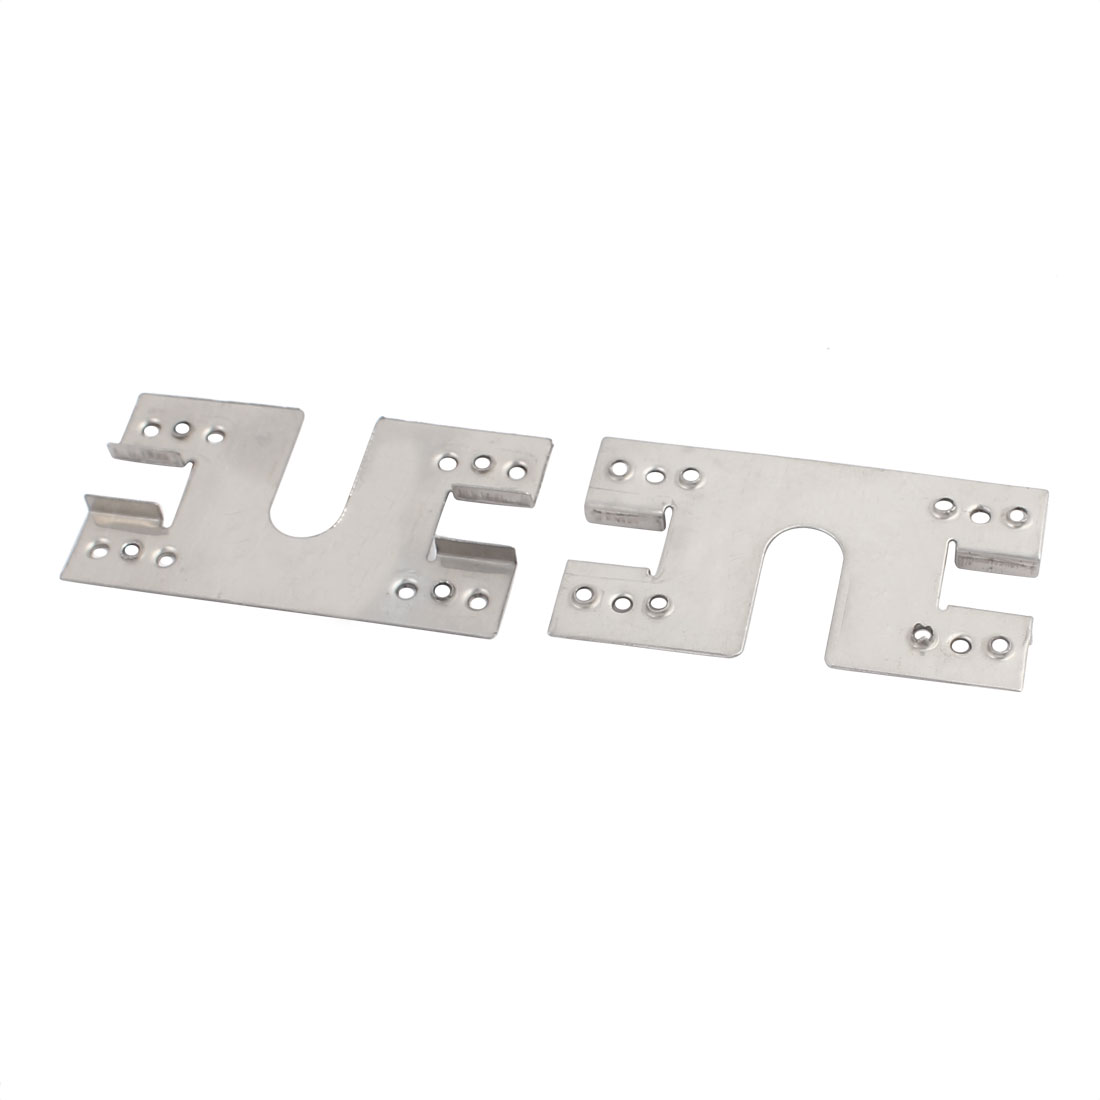 20pcs 50x28x4mm Stainless Steel Solar Conducting Strip Roof Mounting Bracket - image 1 of 2